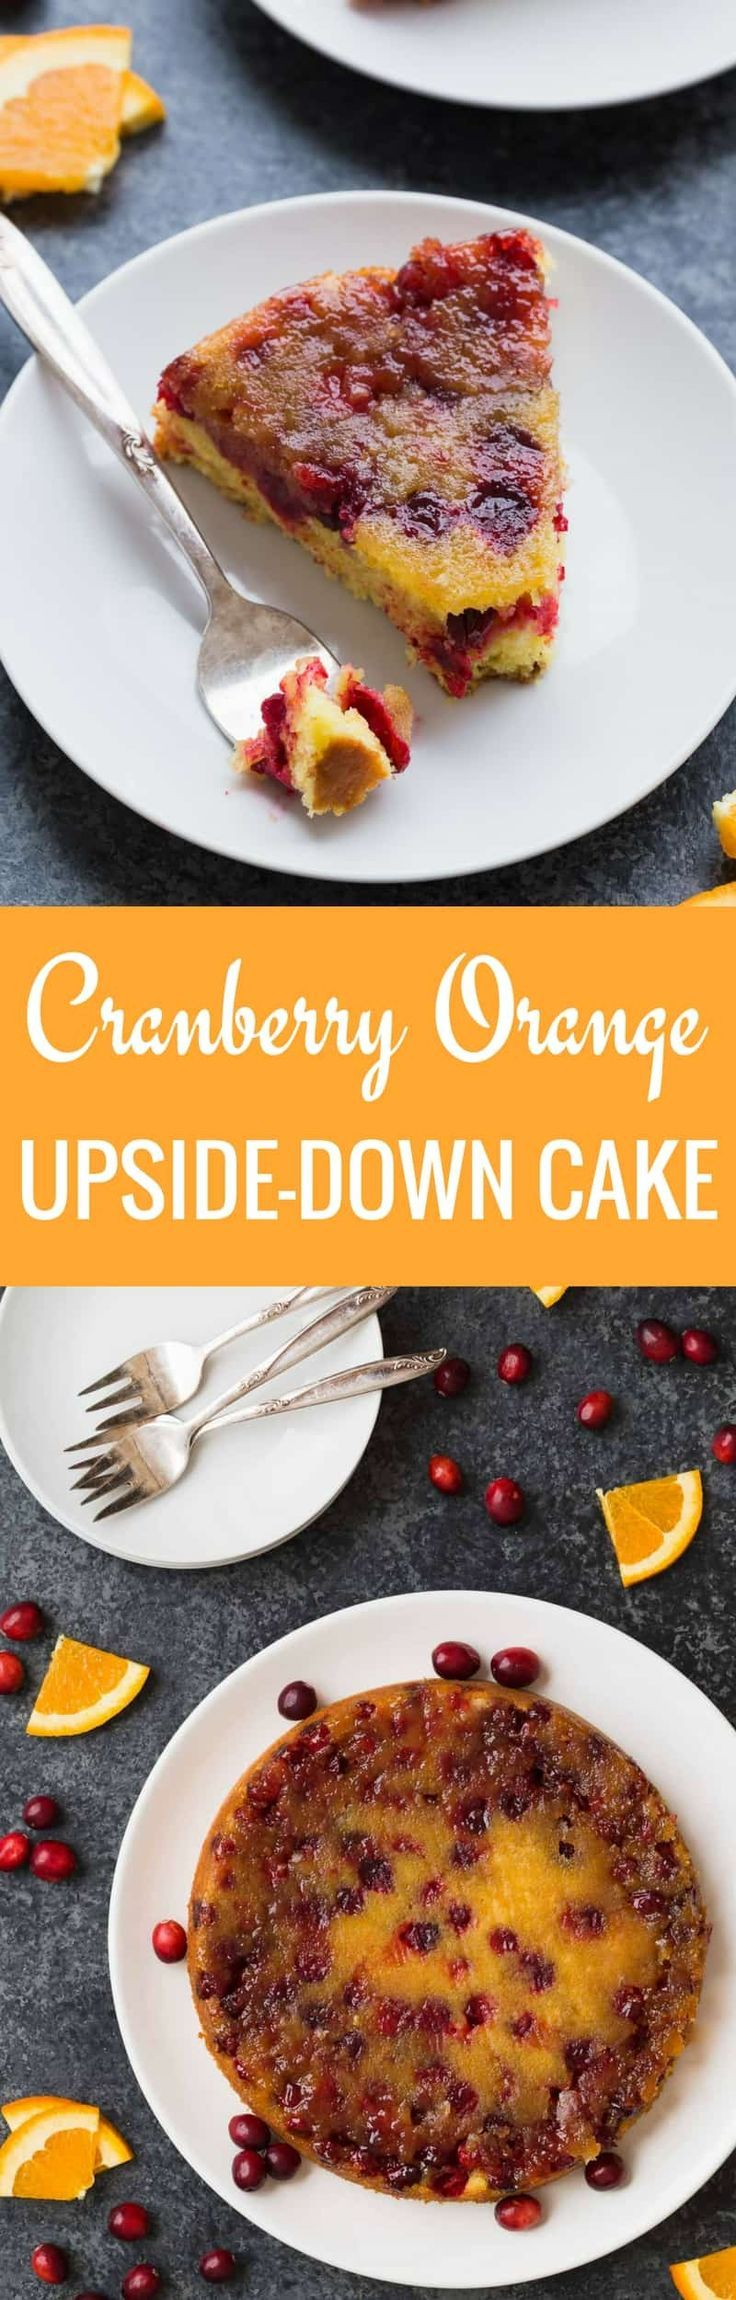 This cranberry orange upside-down cake is splendid. It's light, airy, sweet, with intense orange flavor. You can use fresh or packaged orange juice, but don't leave out the zest. #cranberry #orange #cake #Thanksgiving #Christmas